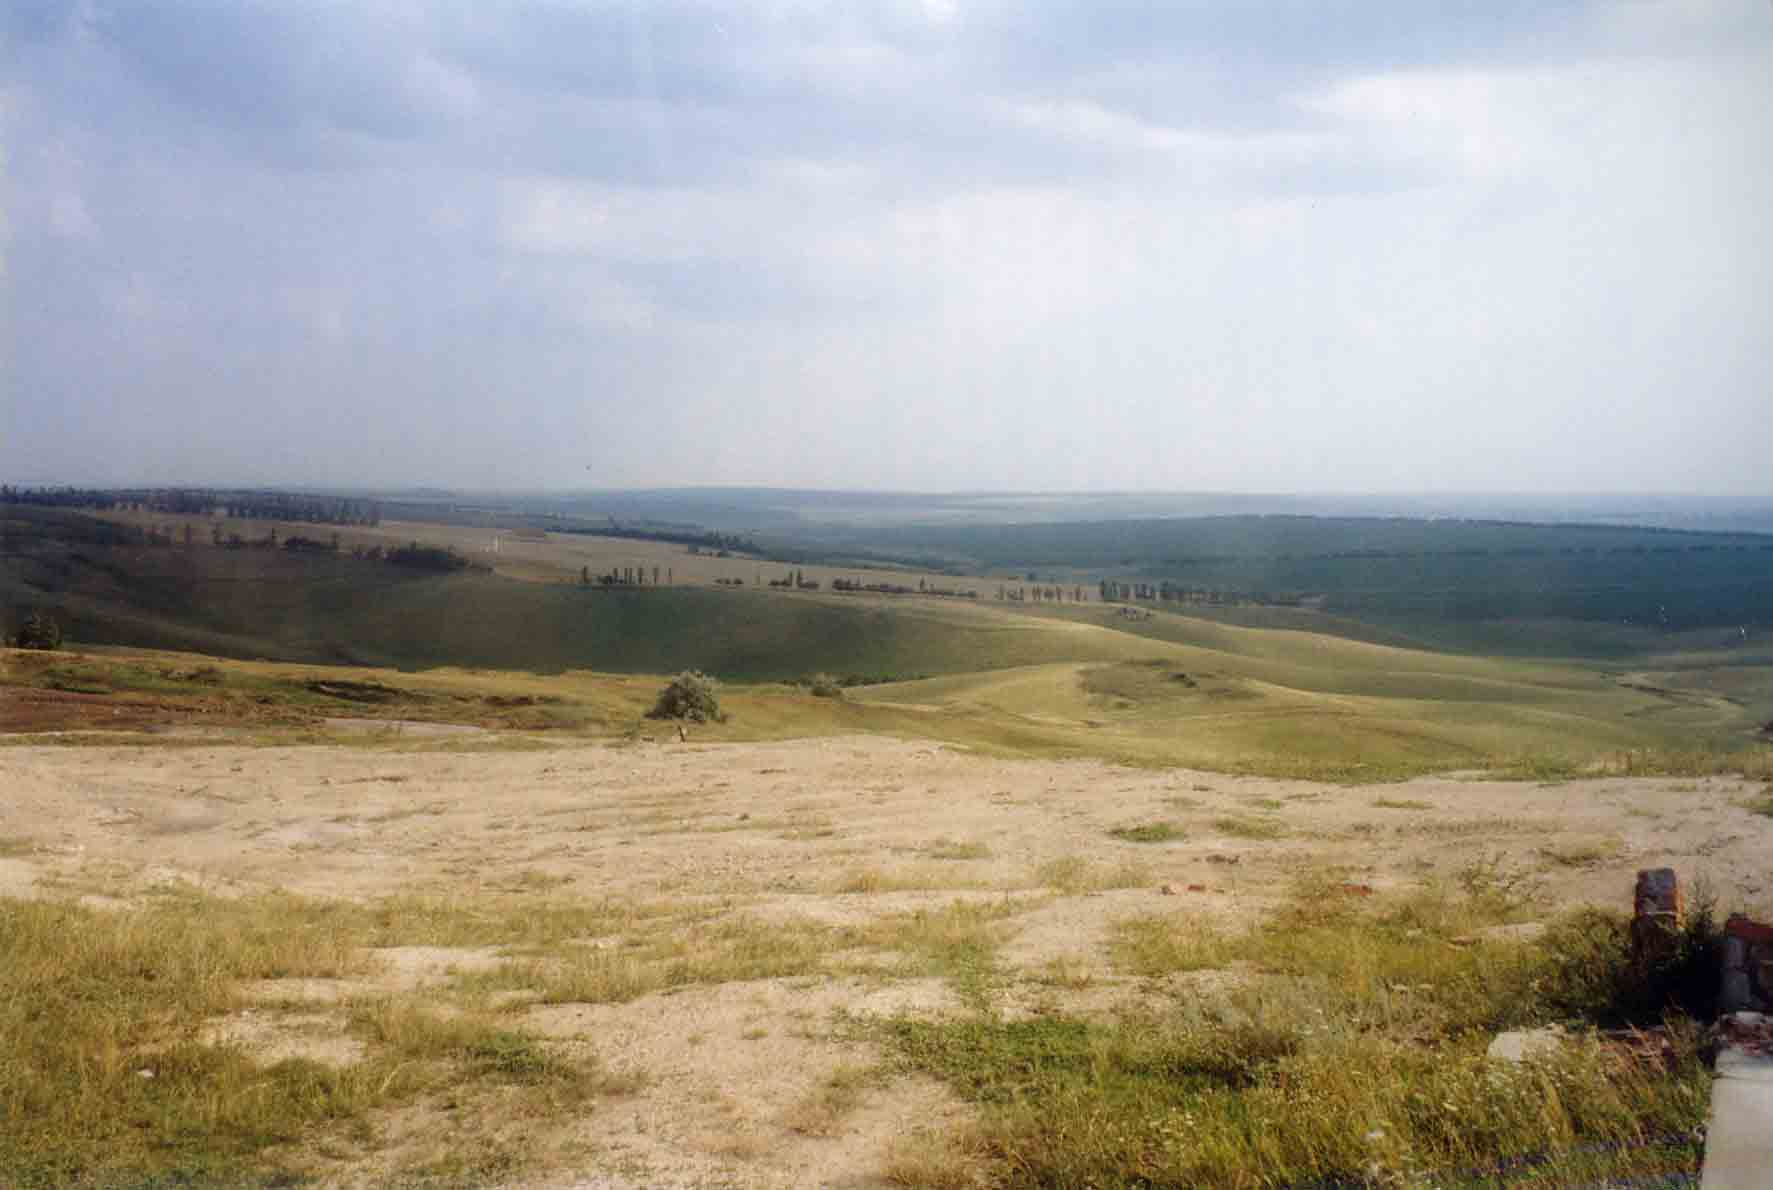 Landschaft in moldawien (republik moldau, republica moldova)